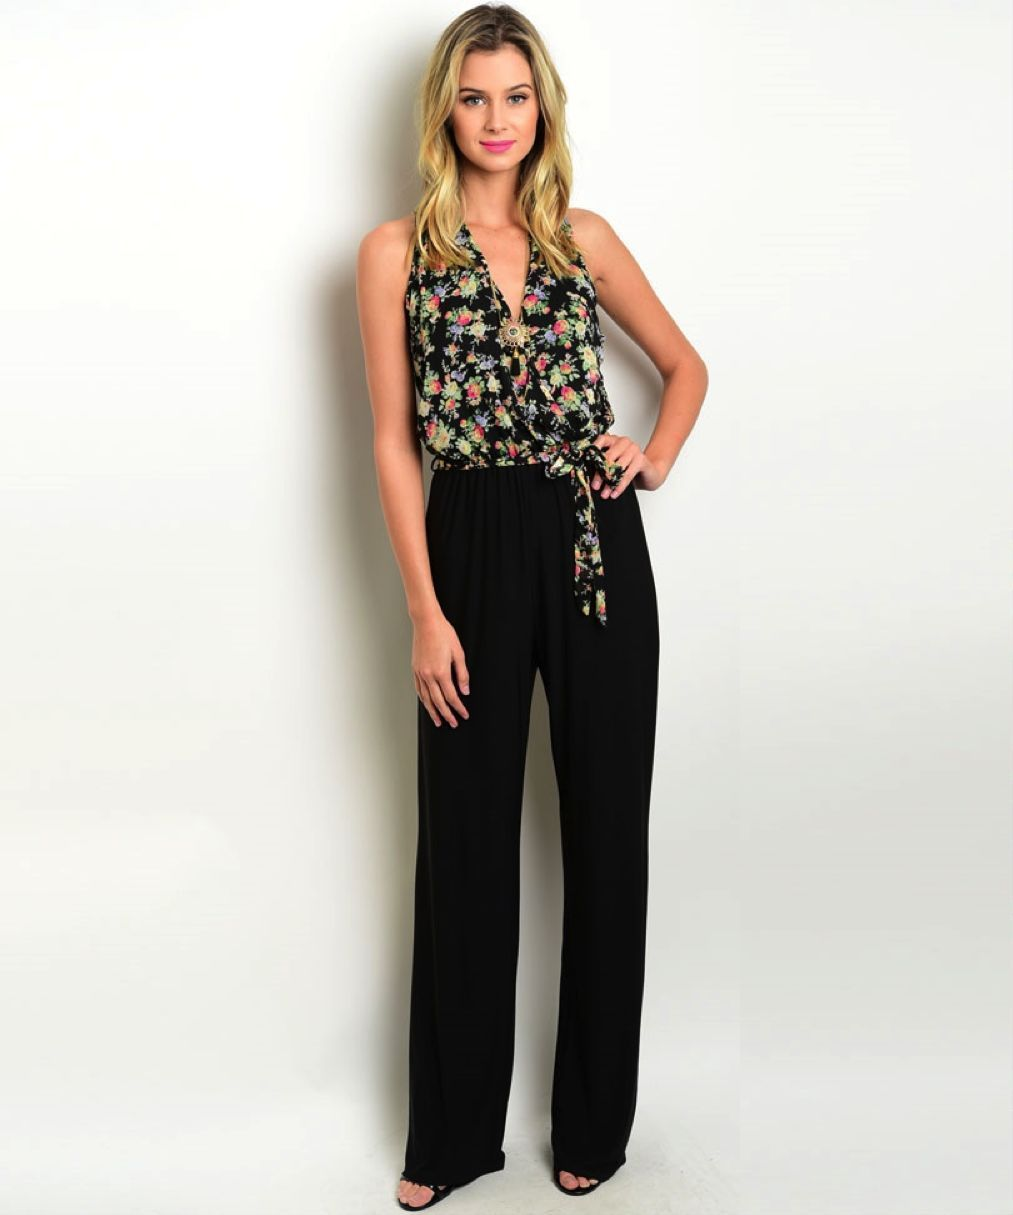 Image 0 of Sexy Black Pants, Floral Top Jrs Party Jumpsuit Romper, Polyester S, M, L - Blac